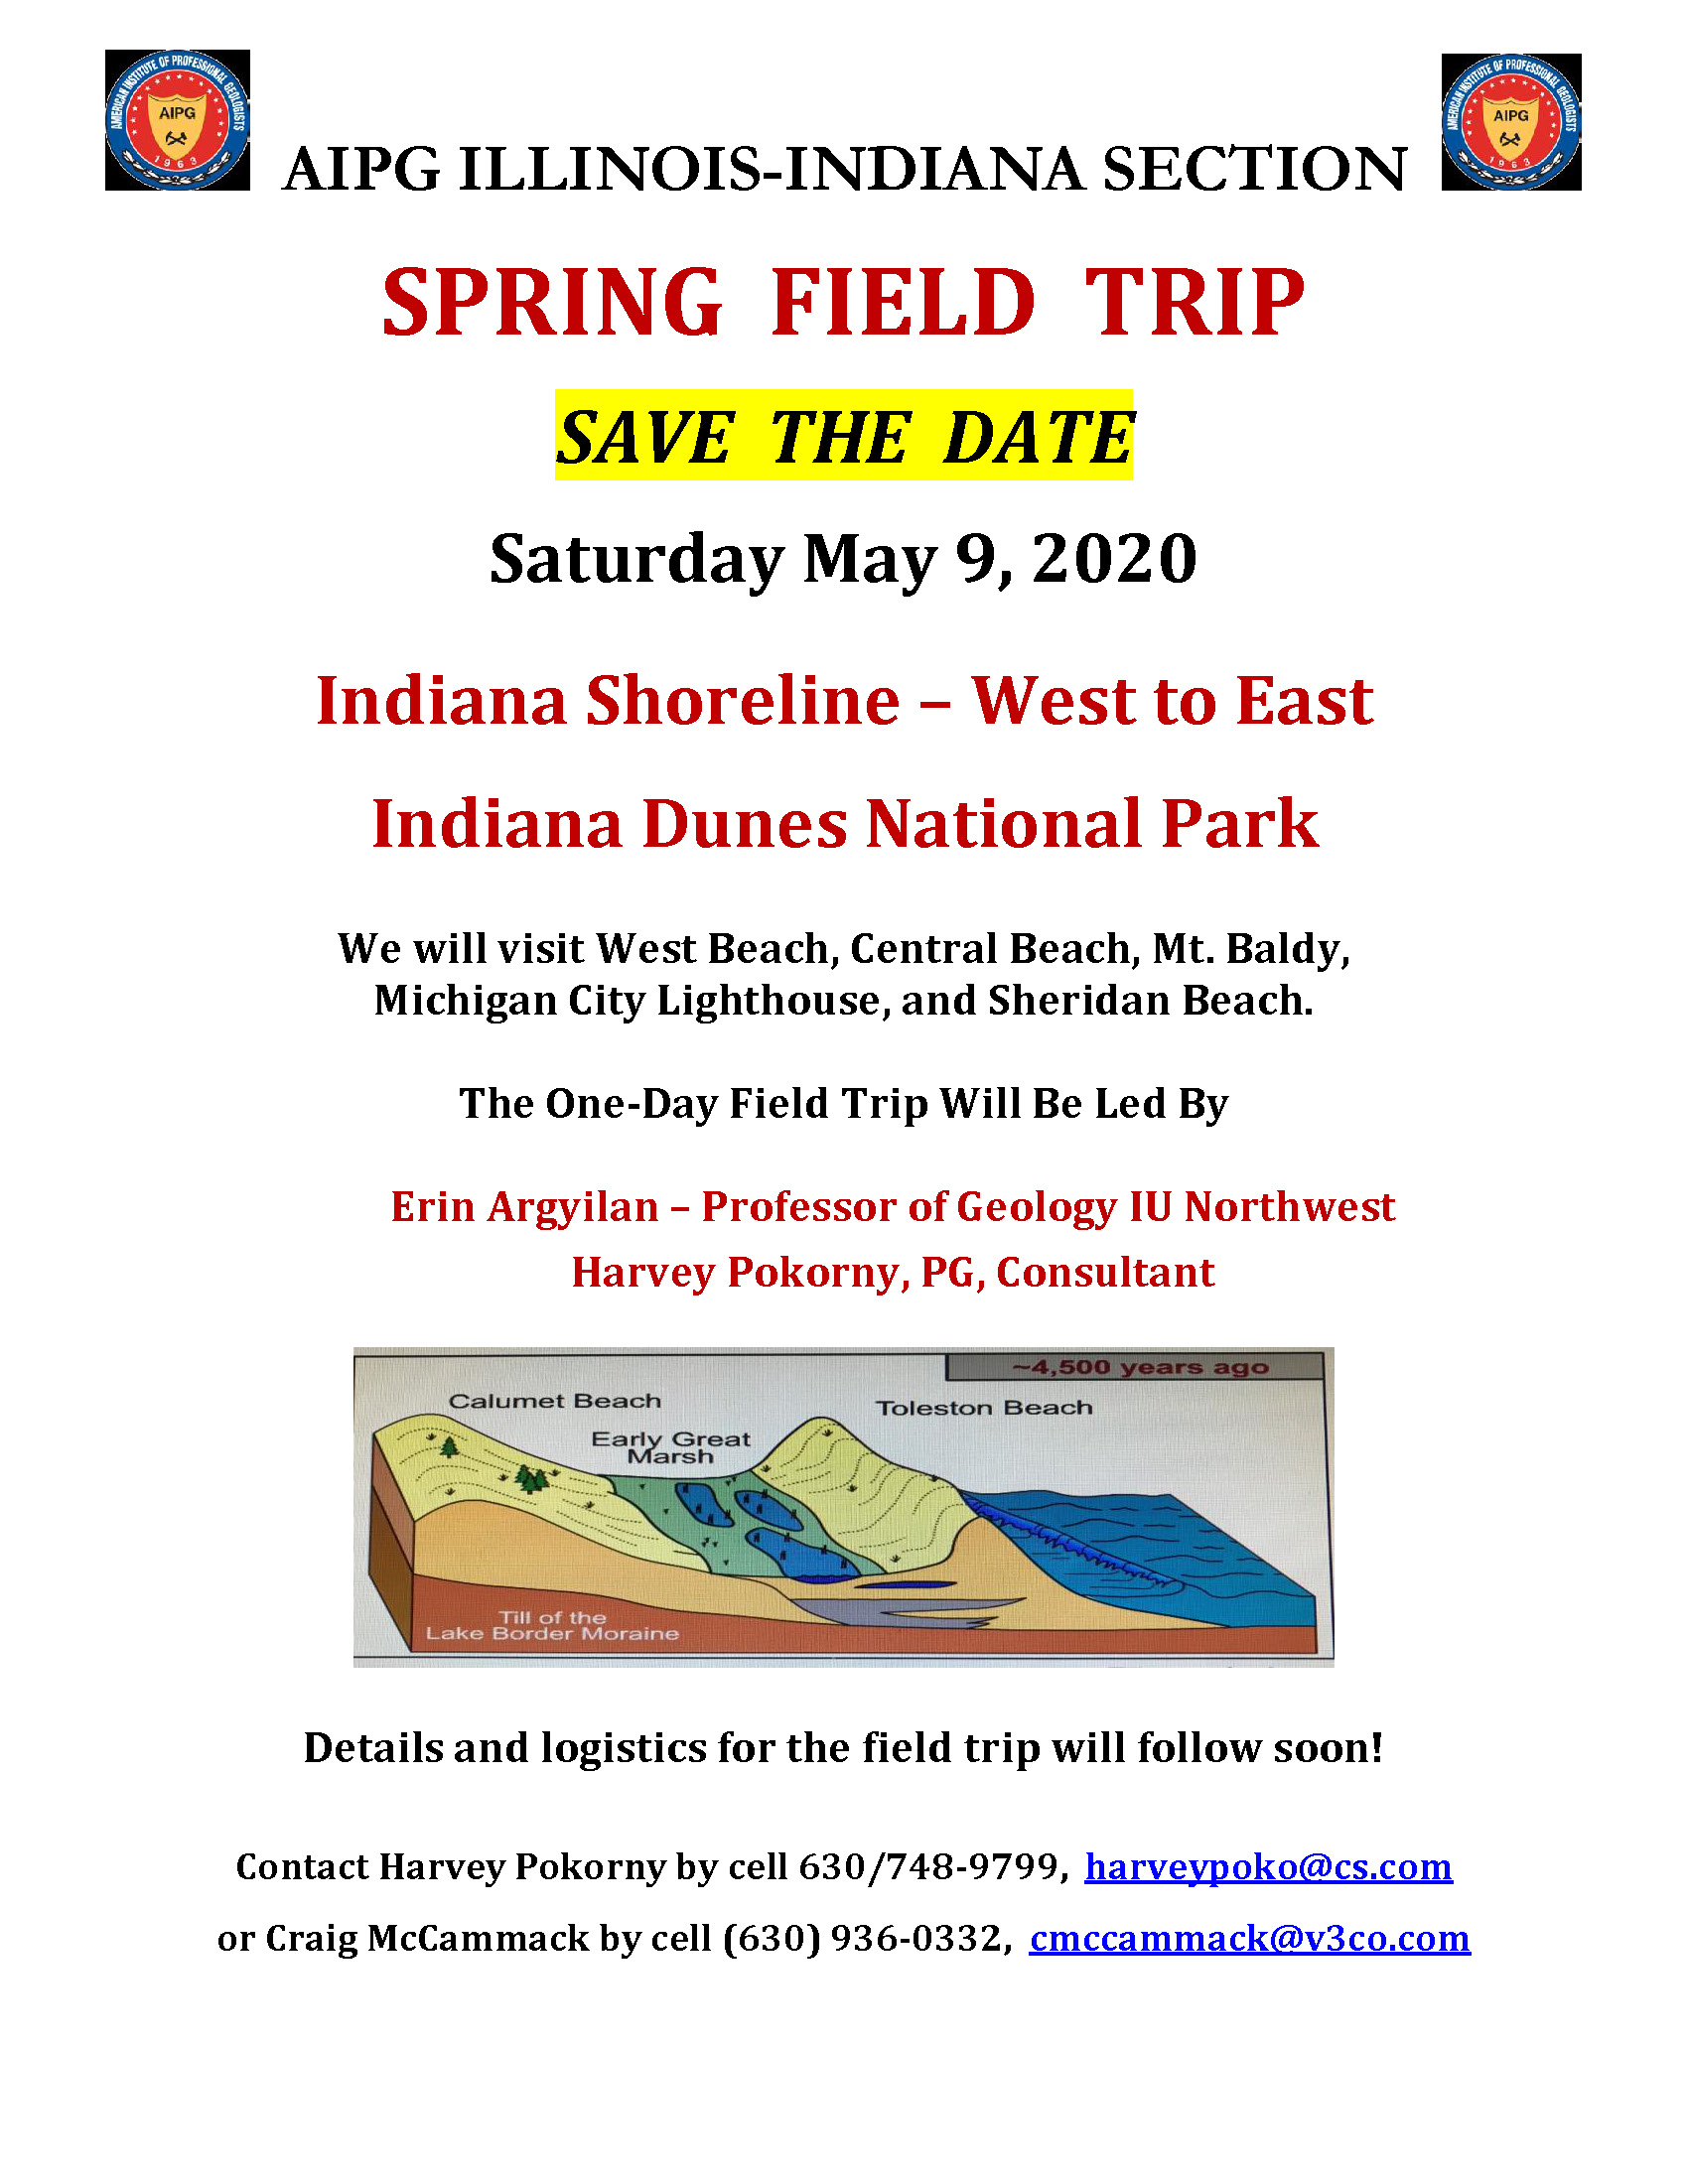 il-in-section-2020-spring-field-trip